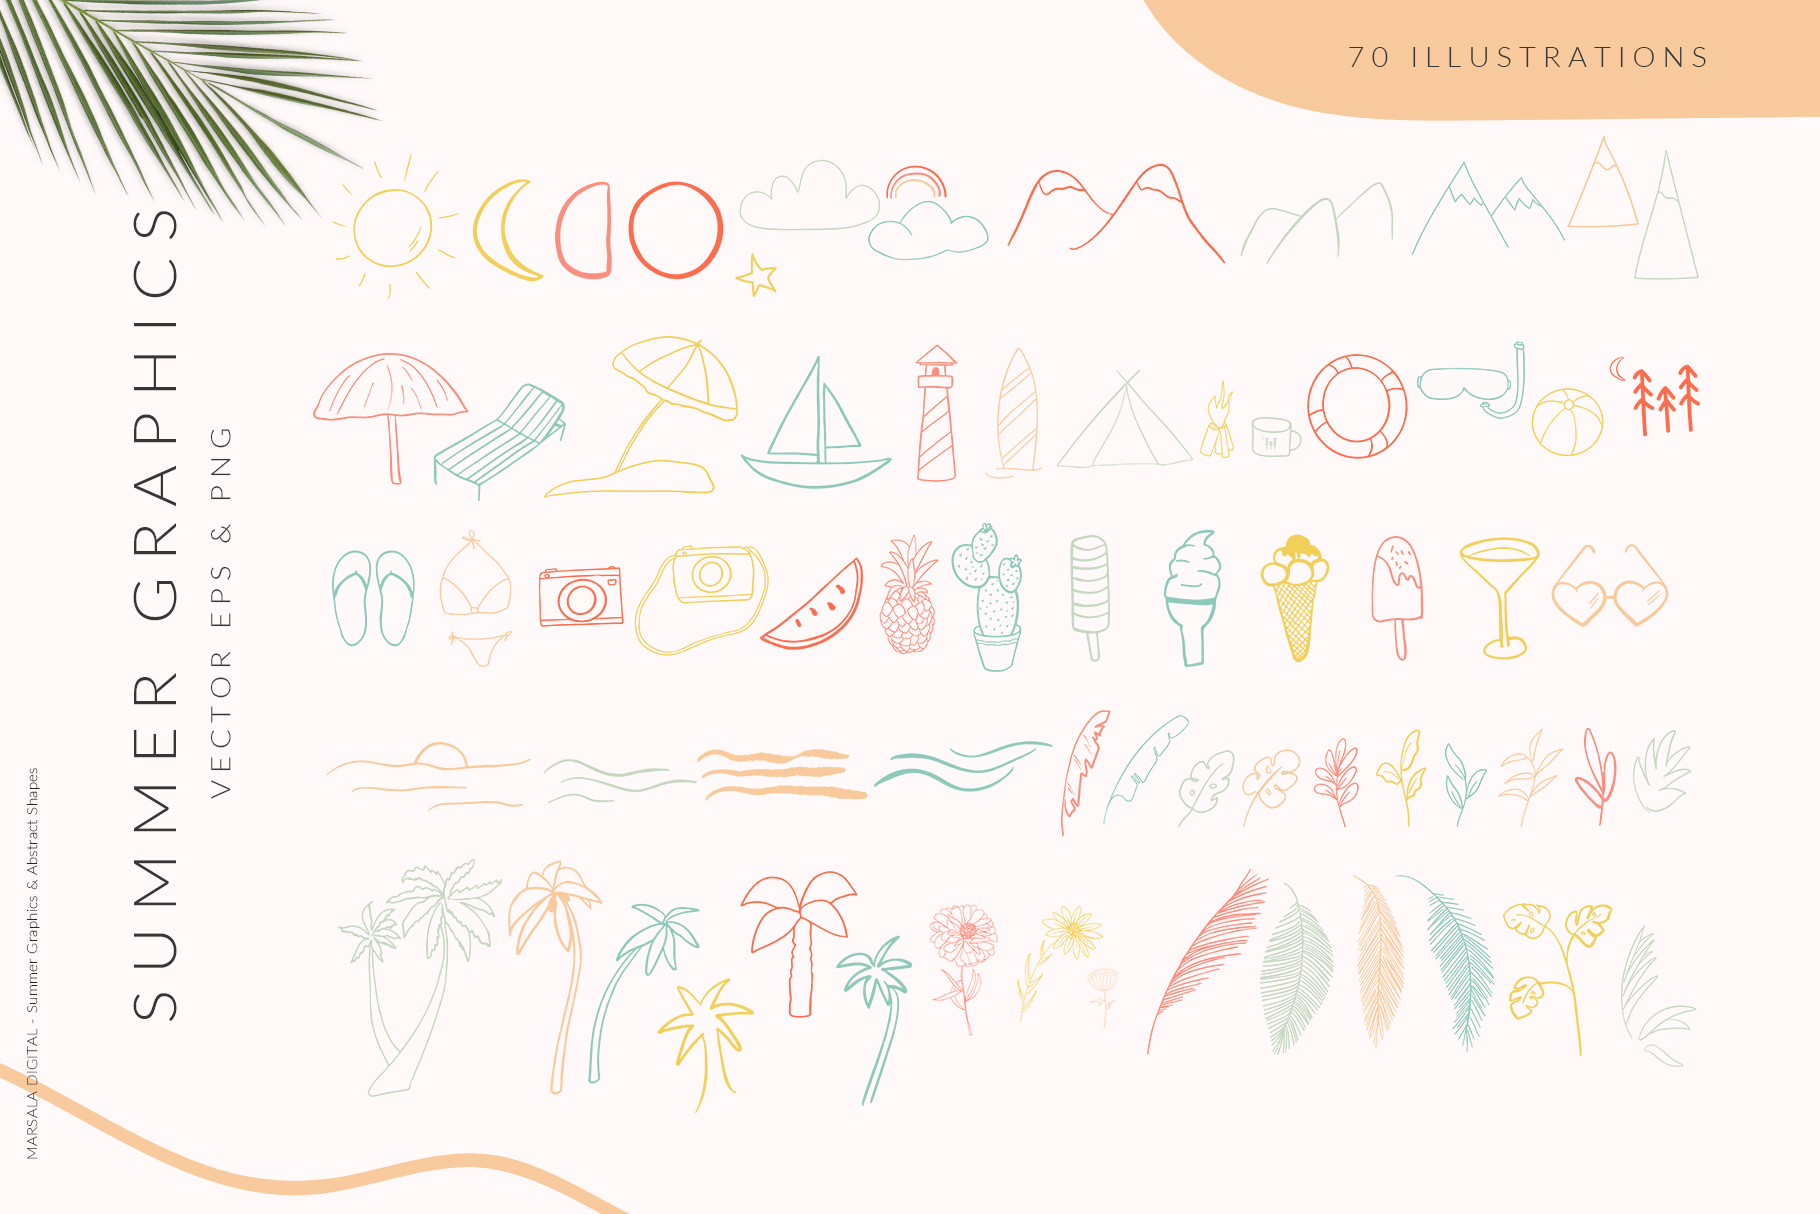 Abstract Shapes & Summer Line Art Vector Cliparts example image 5